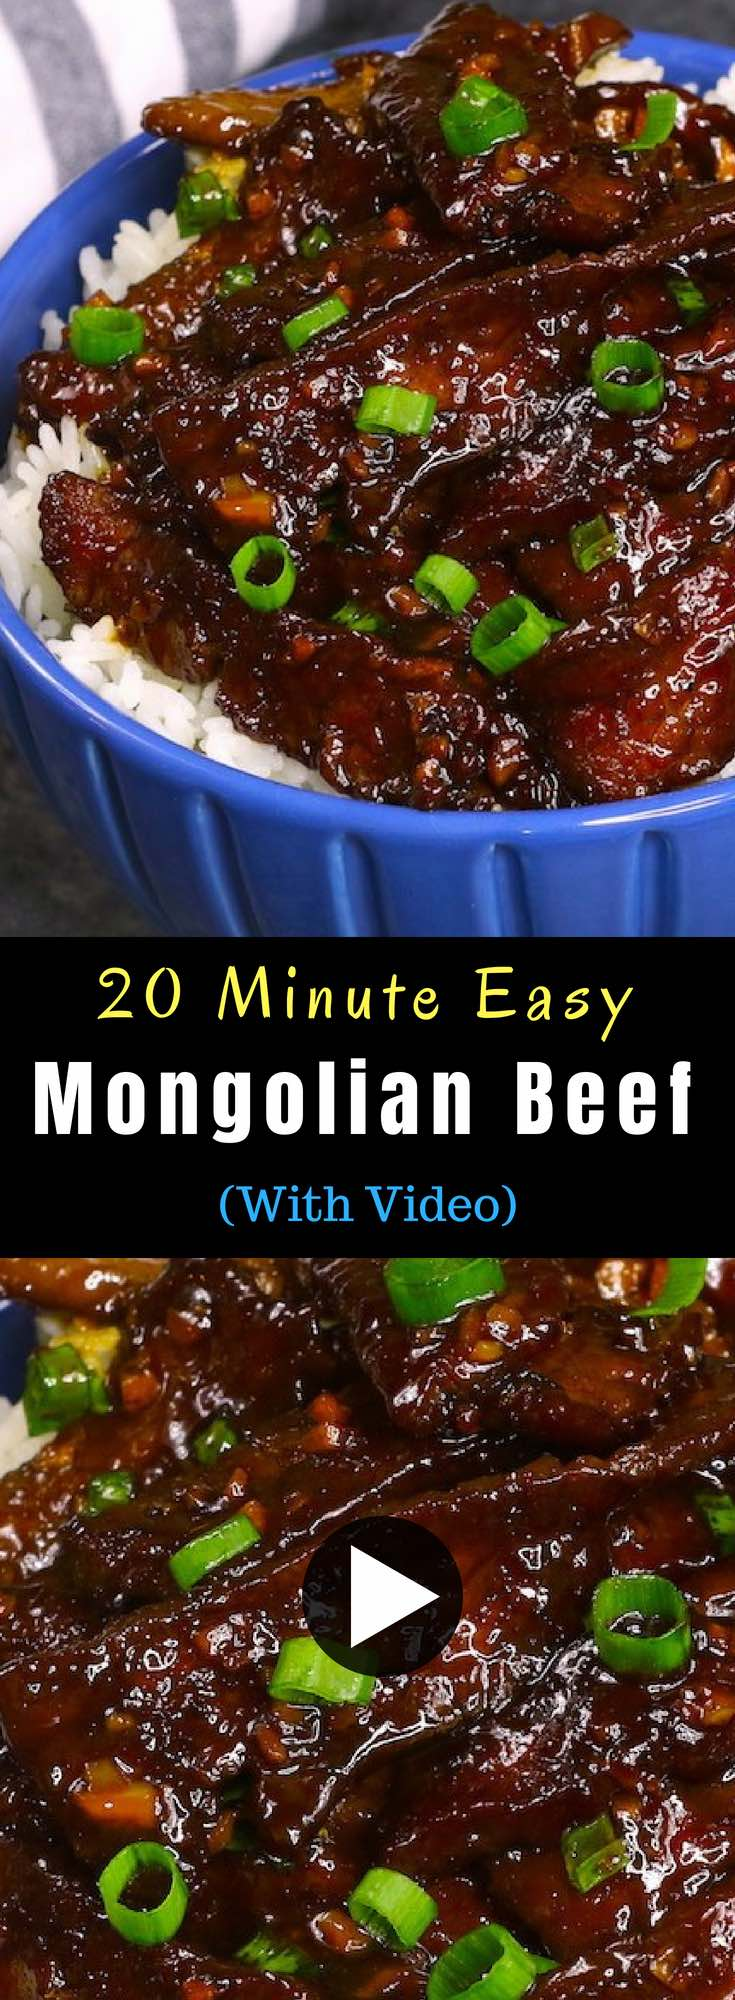 Tender and juicy beef smothered in an addictive sticky, slightly sweet and savory ginger garlic sauce. Mongolian Beef is a popular P.F Chang's menu item and crowd favorite Chinese dish that's ready in 20 minutes. #mongolianBeef #easyBeefRecipe